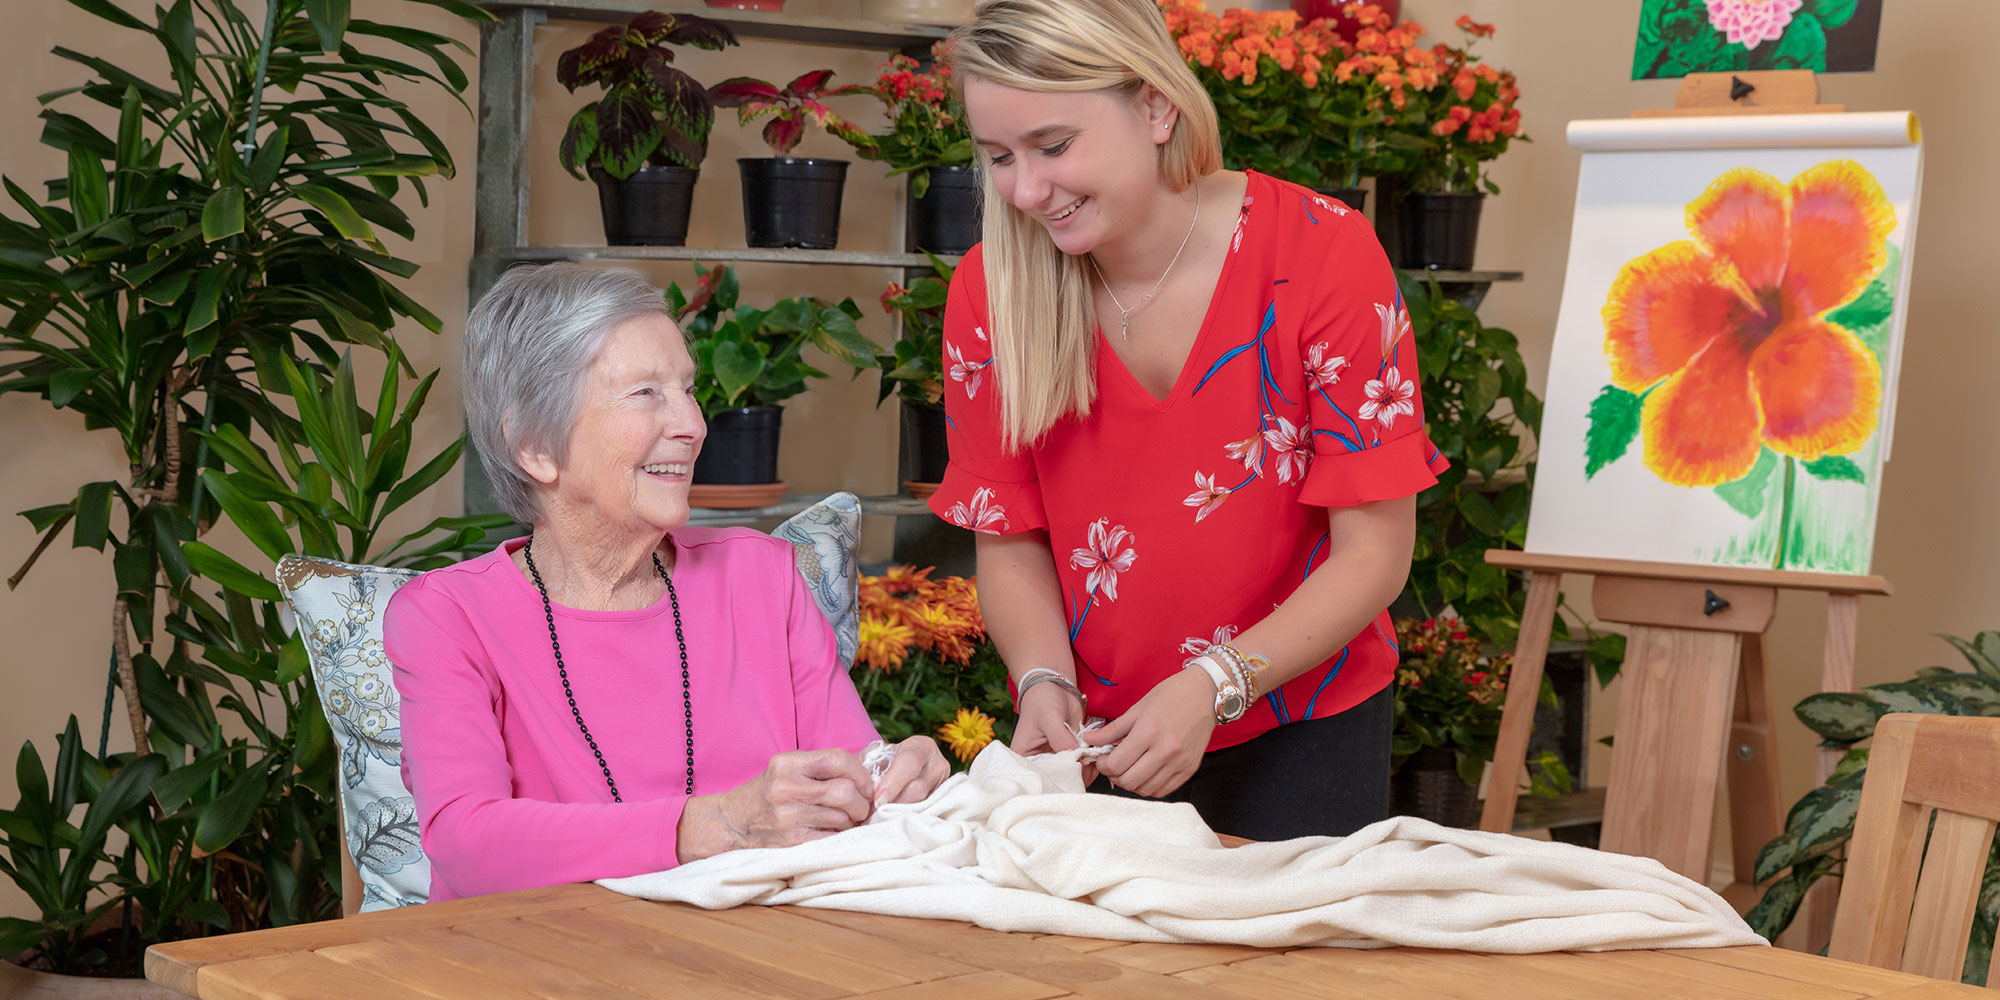 2 women working with a quilt and smiling